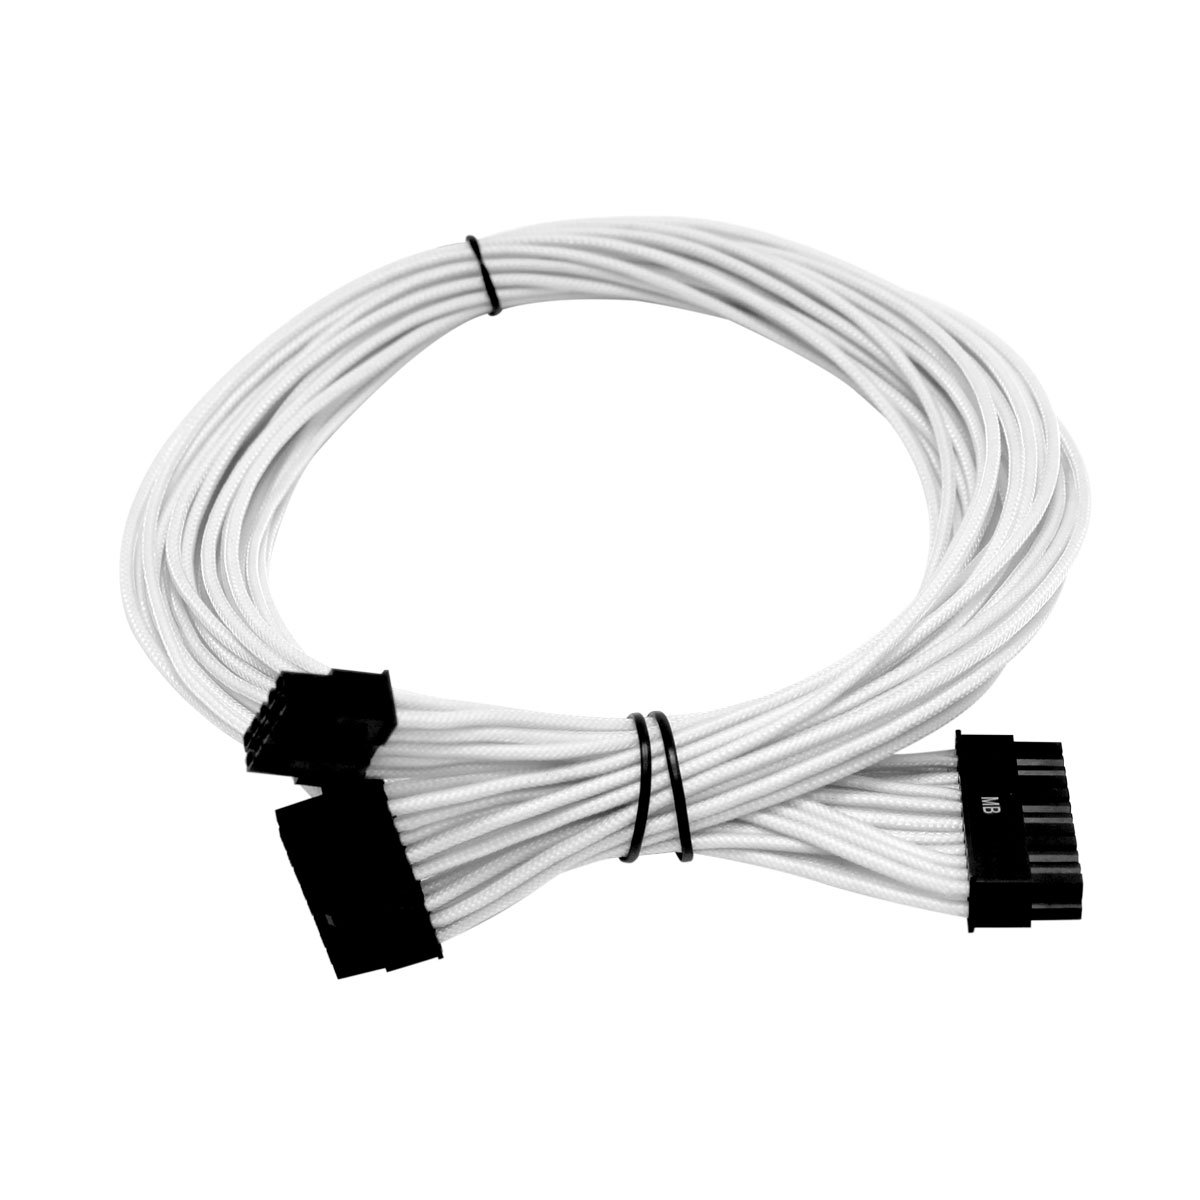 EVGA G2/G3/P2/T2  100-CW-1300-B9 Power Supply Cable Set (Individually Sleeved), White by EVGA (Image #2)